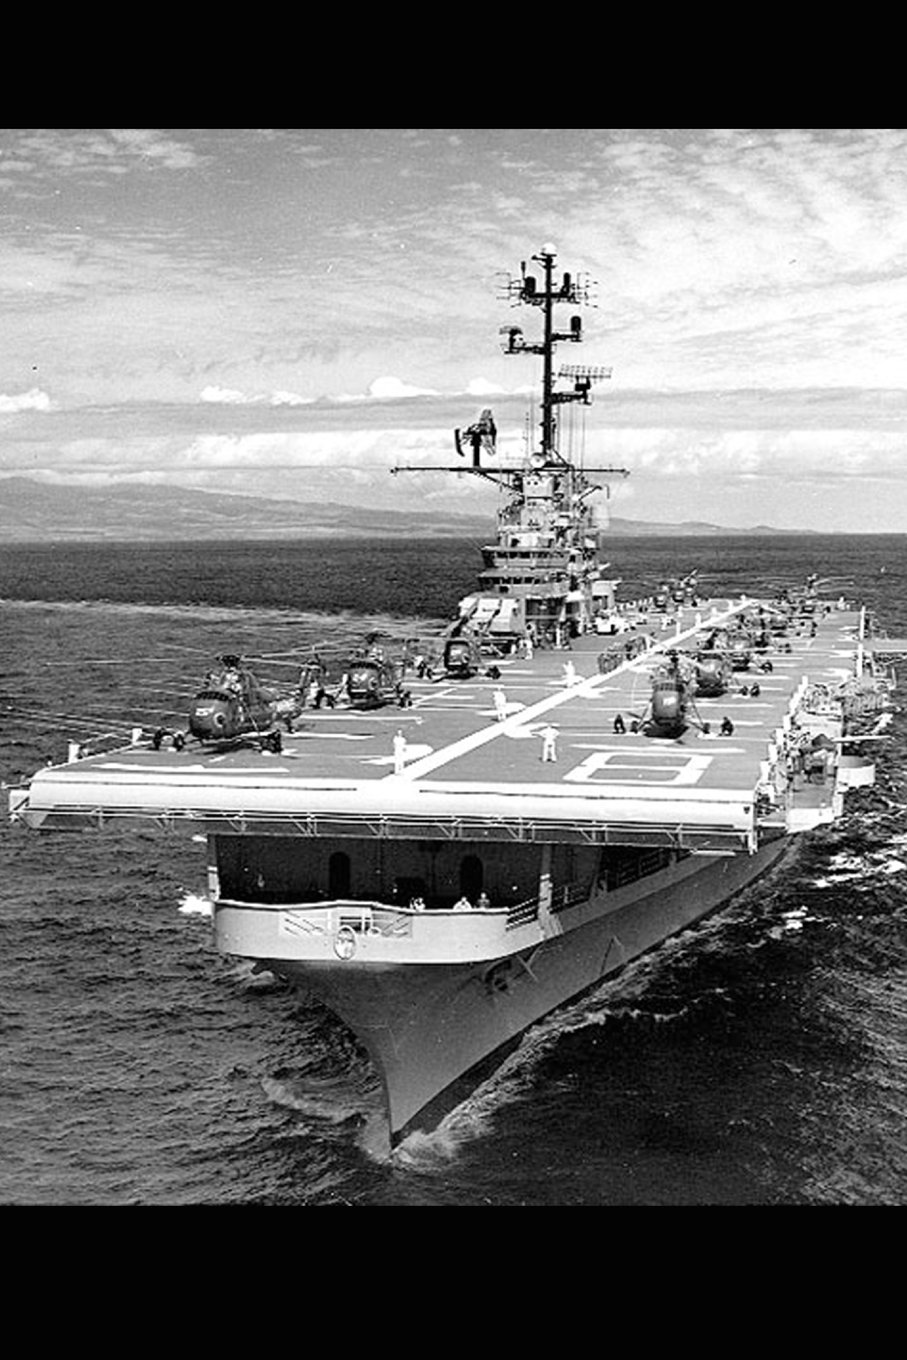 Read Online USS Valley Forge (LPH-8) US Navy Aircraft Carrier Journal: Take Notes, Write Down Memories in this 150 Page Lined Journal ebook